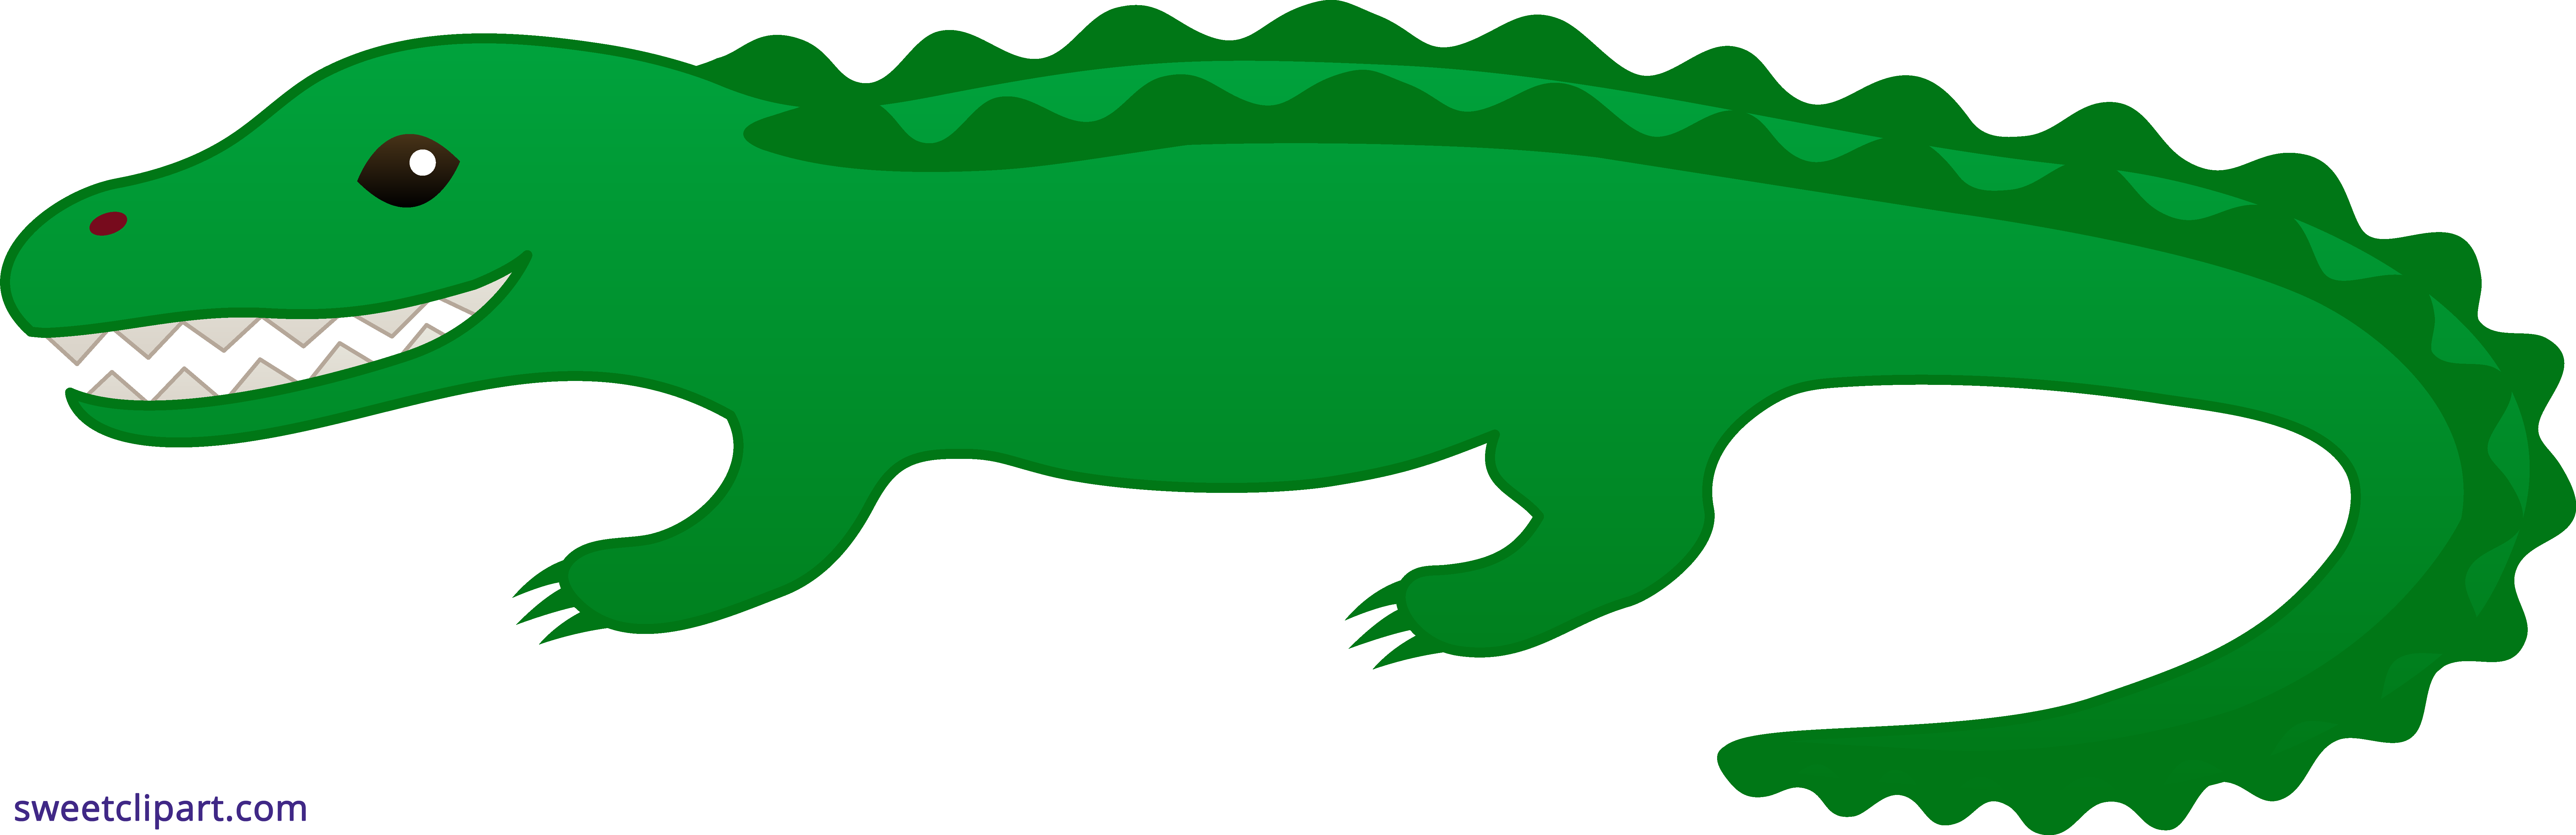 Mascot vector alligator. Nile crocodile clipart at